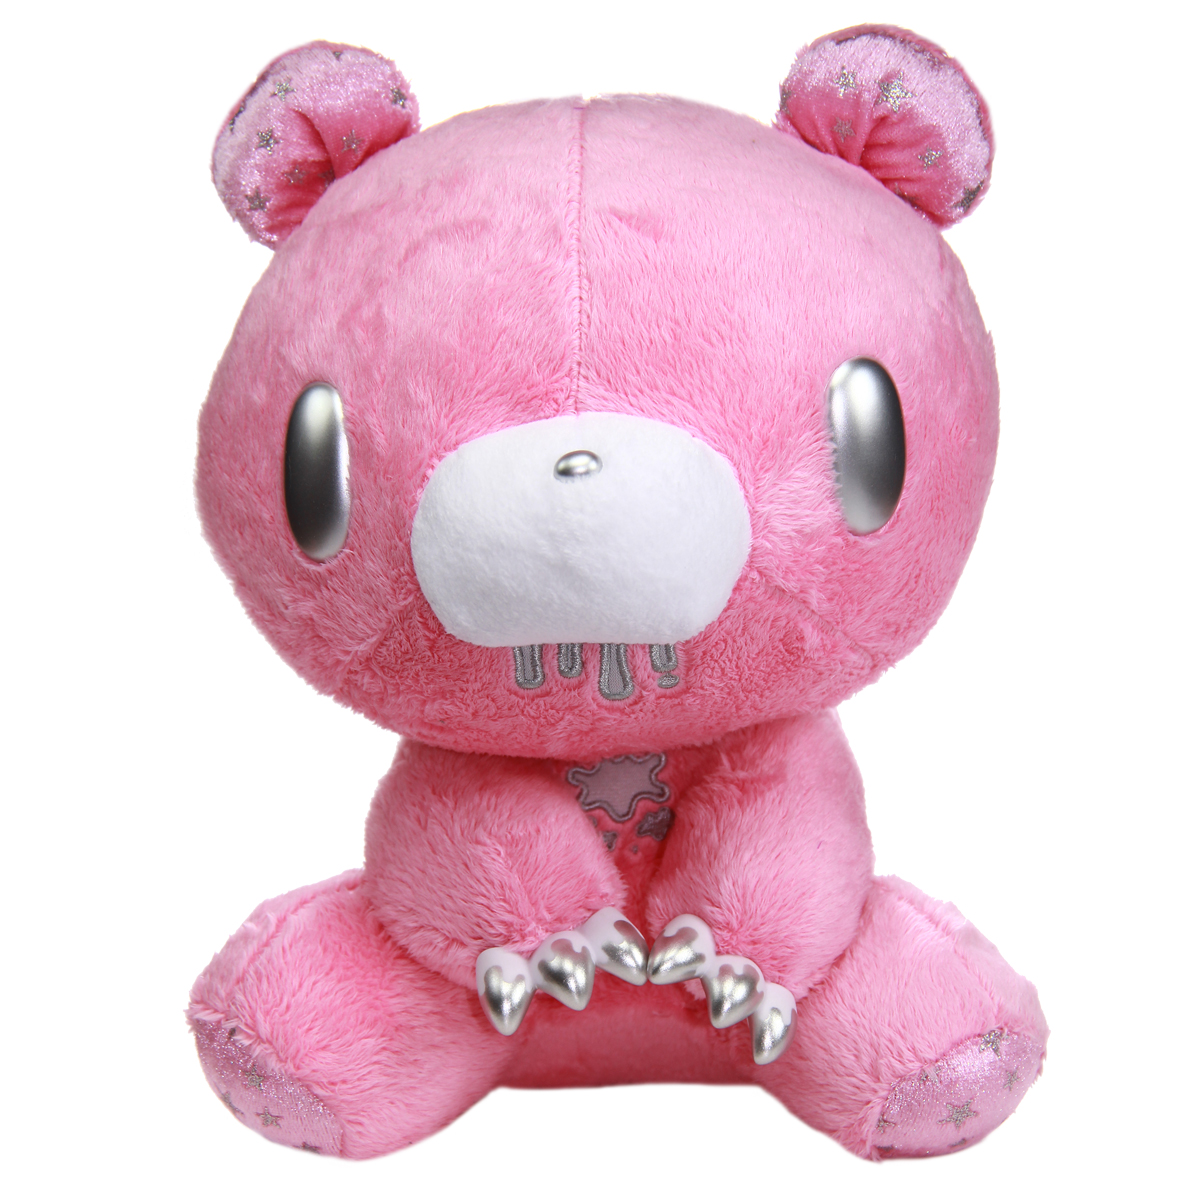 Taito Starry Edition Gloomy Bear Plush Doll Pink GP #528 12 Inches